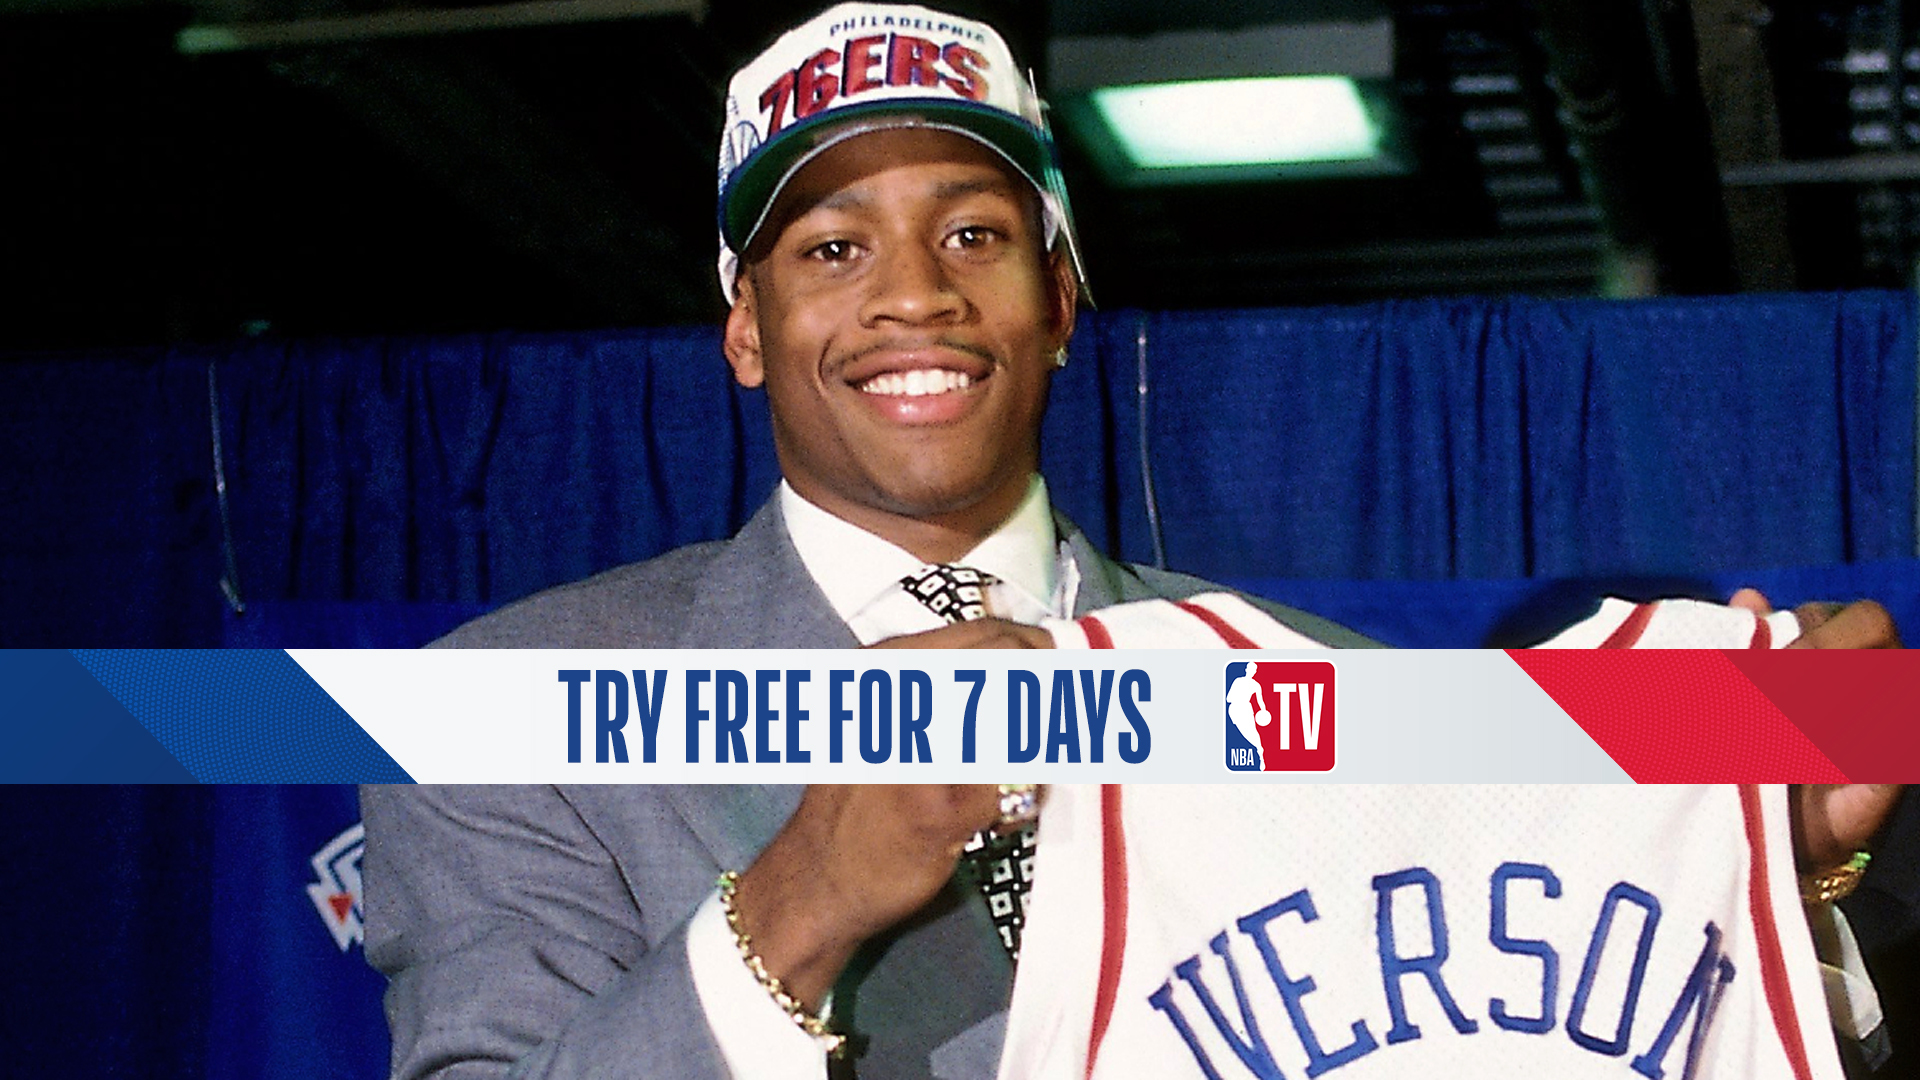 'Ready Or Not: The '96 Draft' premieres at 8 ET tonight